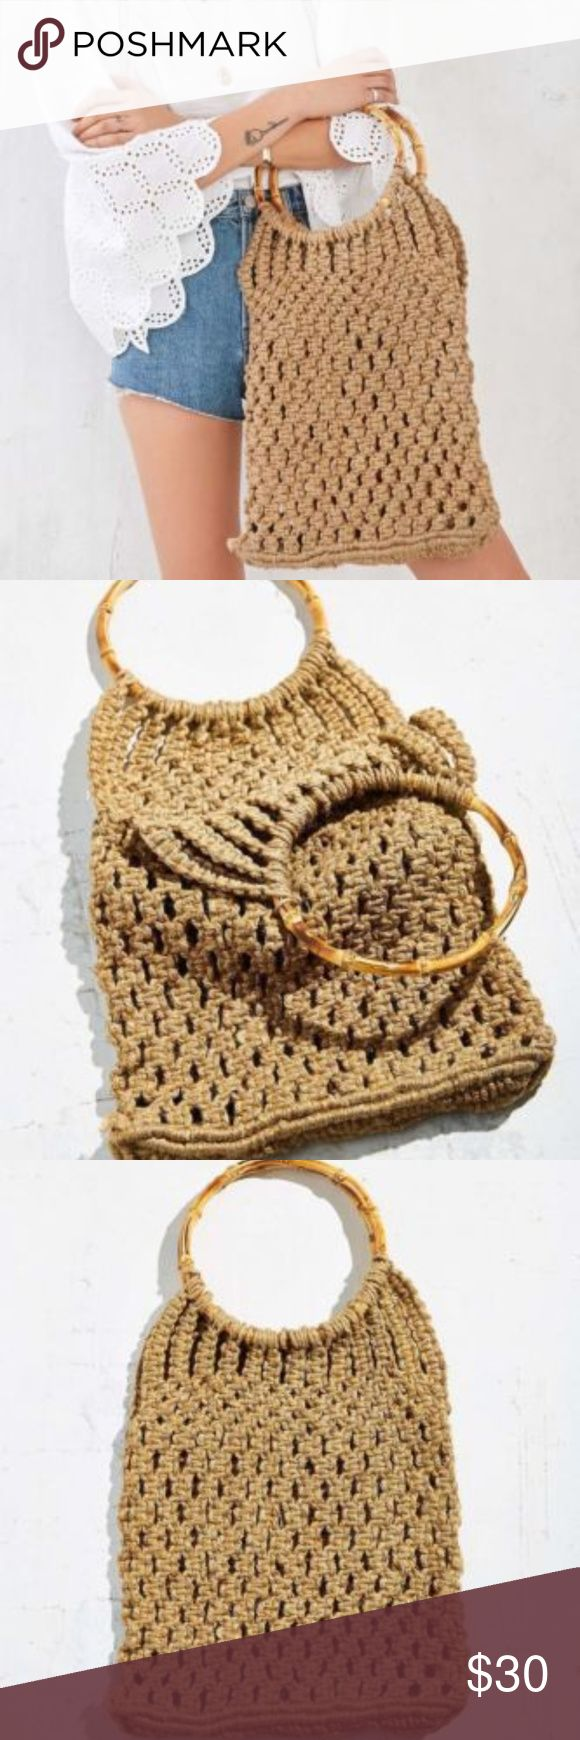 """NWOT Urban Outfitters Ecote weave tote bag Ecote Bamboo Handles Jute Weave Tote Bag Purse Urban Outfitters New w/o tag-tag is marked to prevent return to retail store Retail $59 14"""" tall without handles 100% Jute Urban Outfitters Bags"""